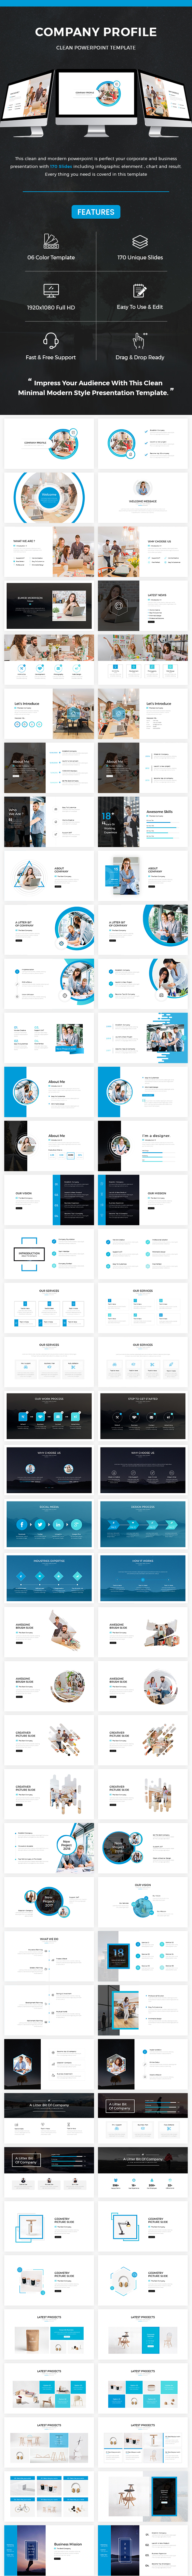 Company Profile Powerpoint Template 2018 - Business PowerPoint Templates